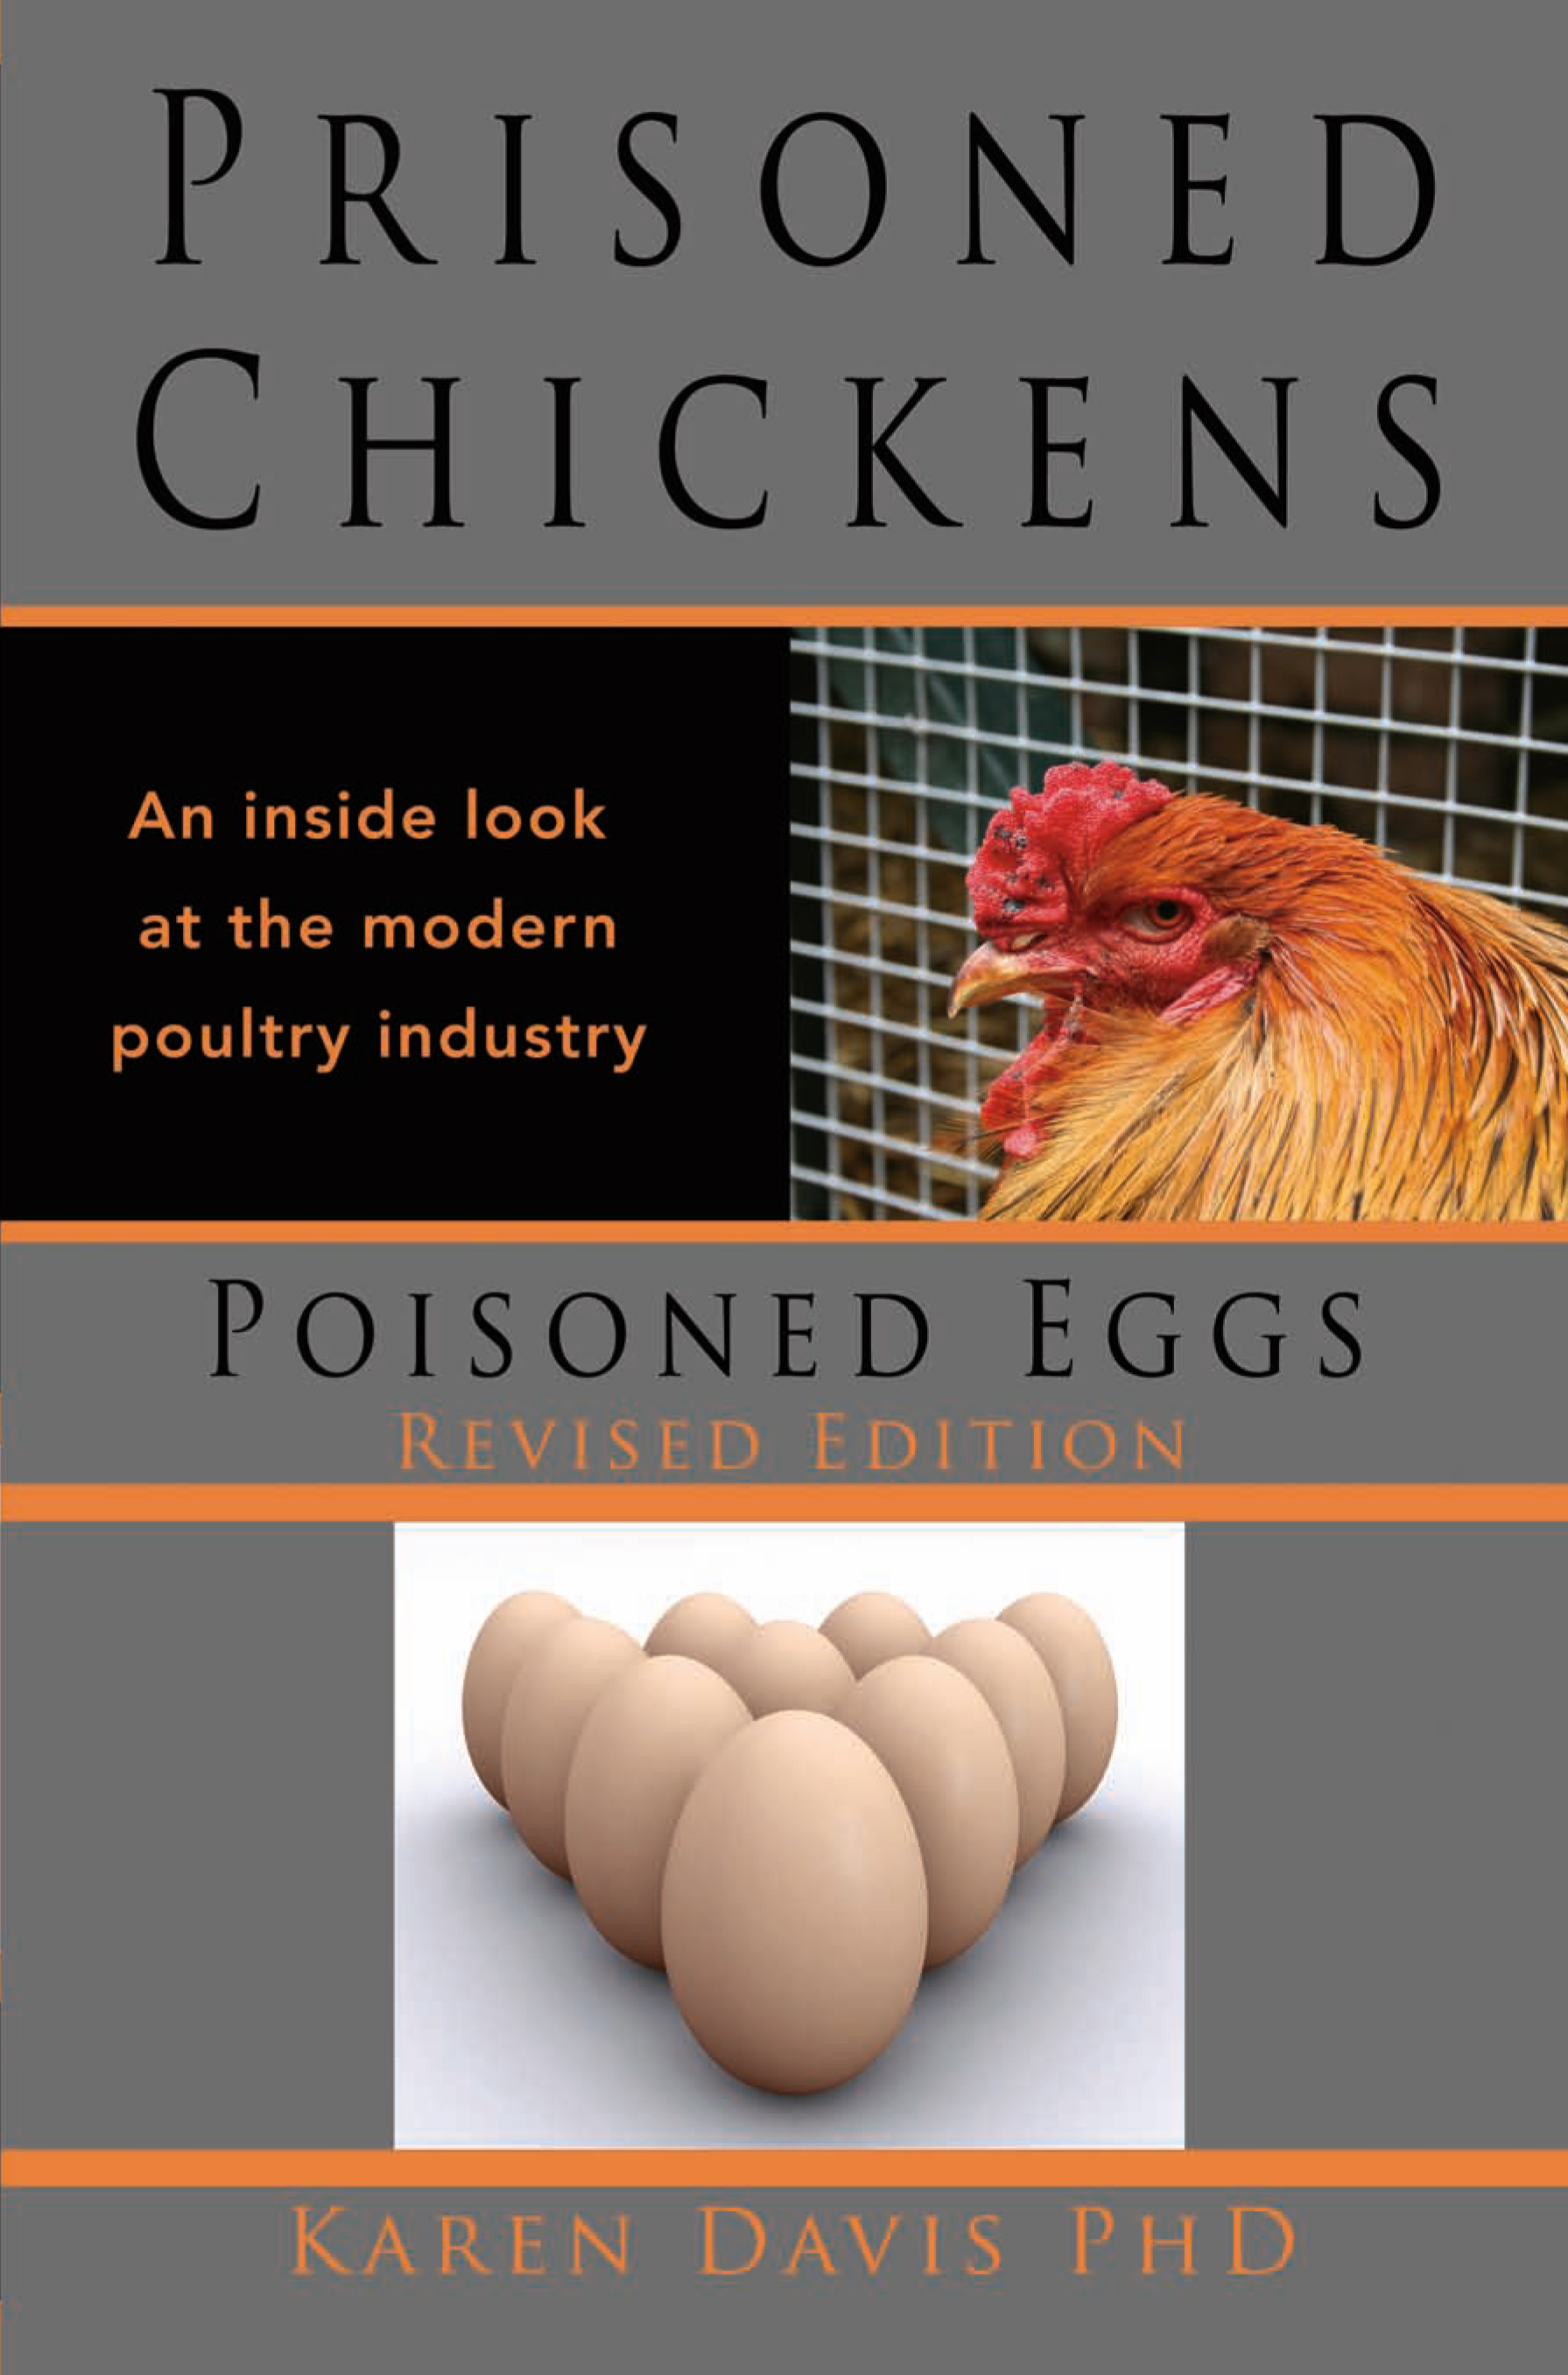 Prisoned-Chickens-Poisoned-Eggs